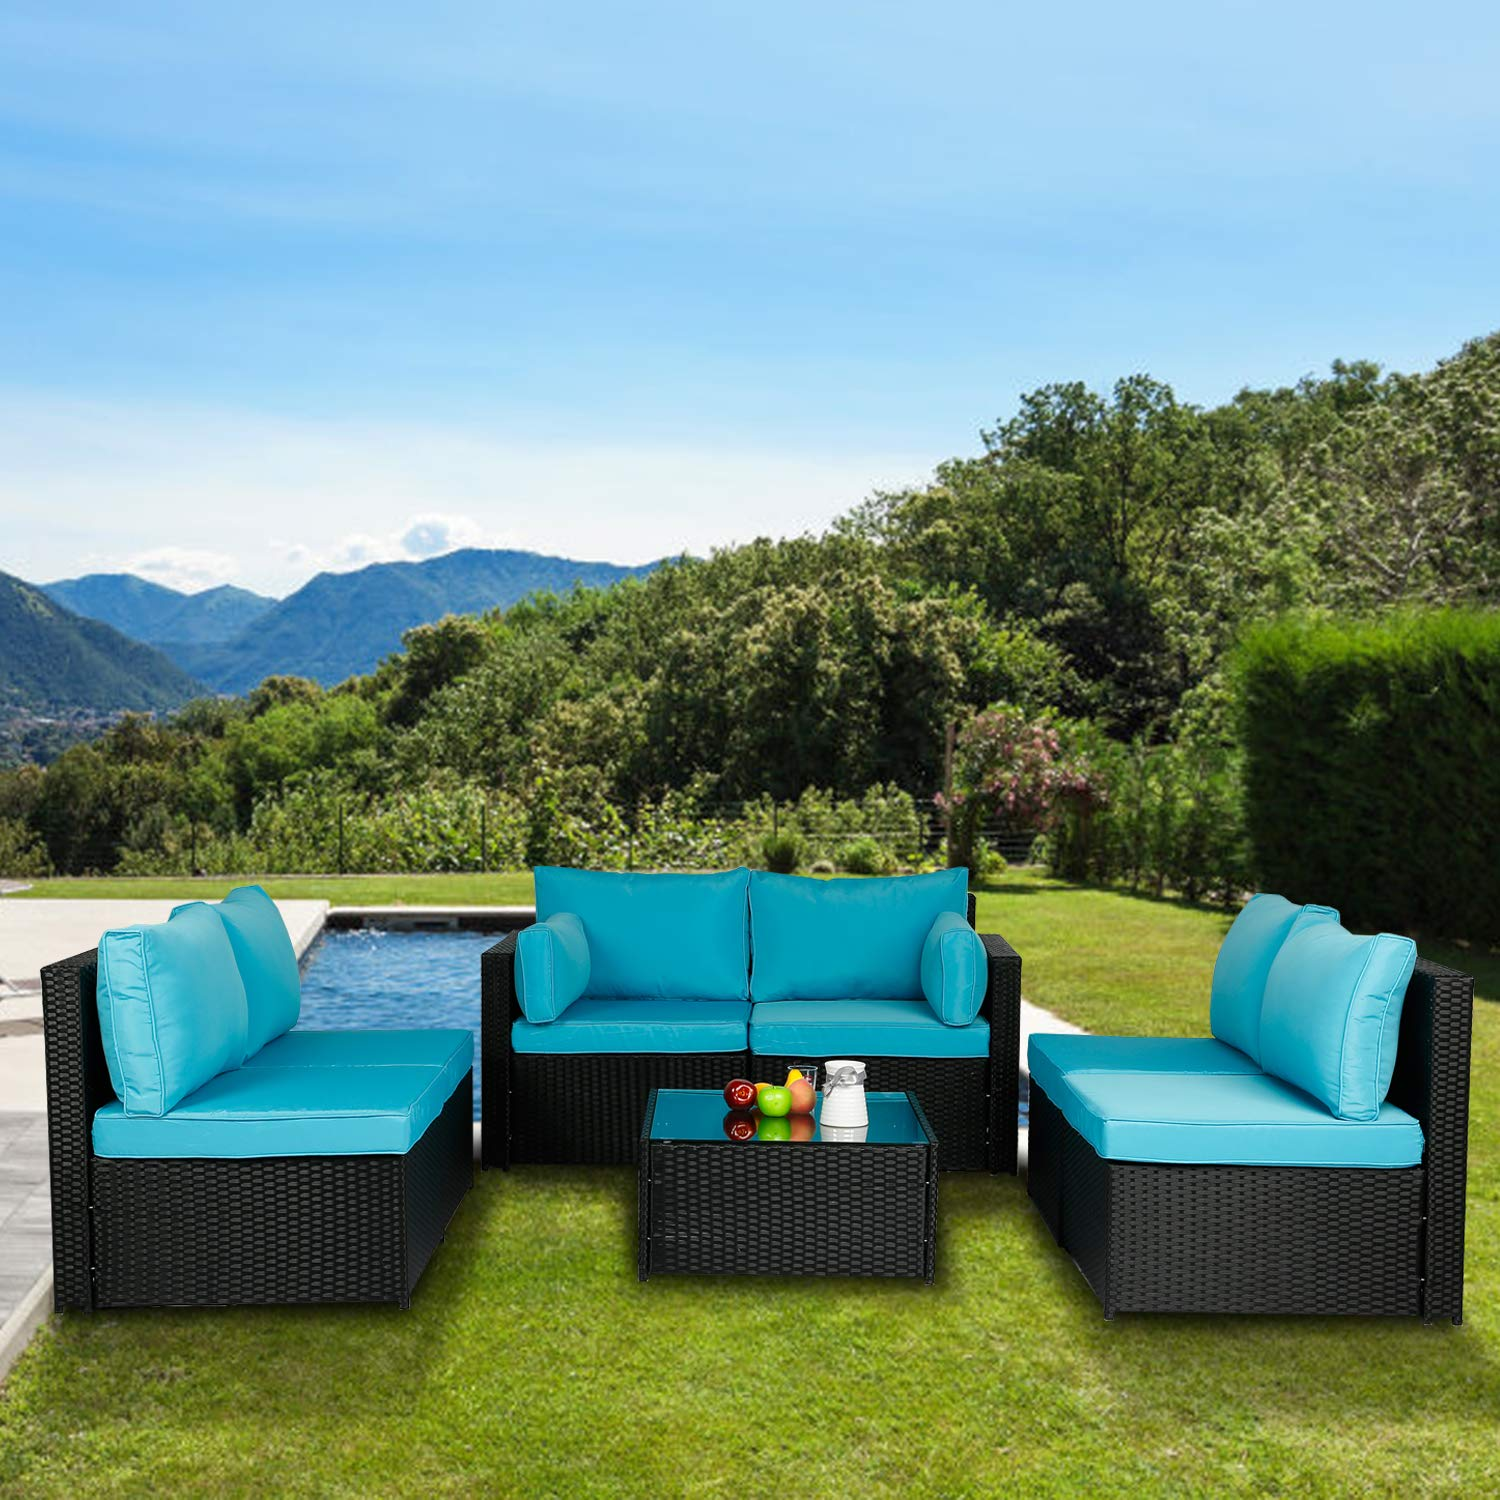 Aclumsy 7 Pieces Patio PE Rattan Sofa Set Outdoor Sectional Furniture Wicker Chair Conversation Set with Cushions and Tea Table Blue